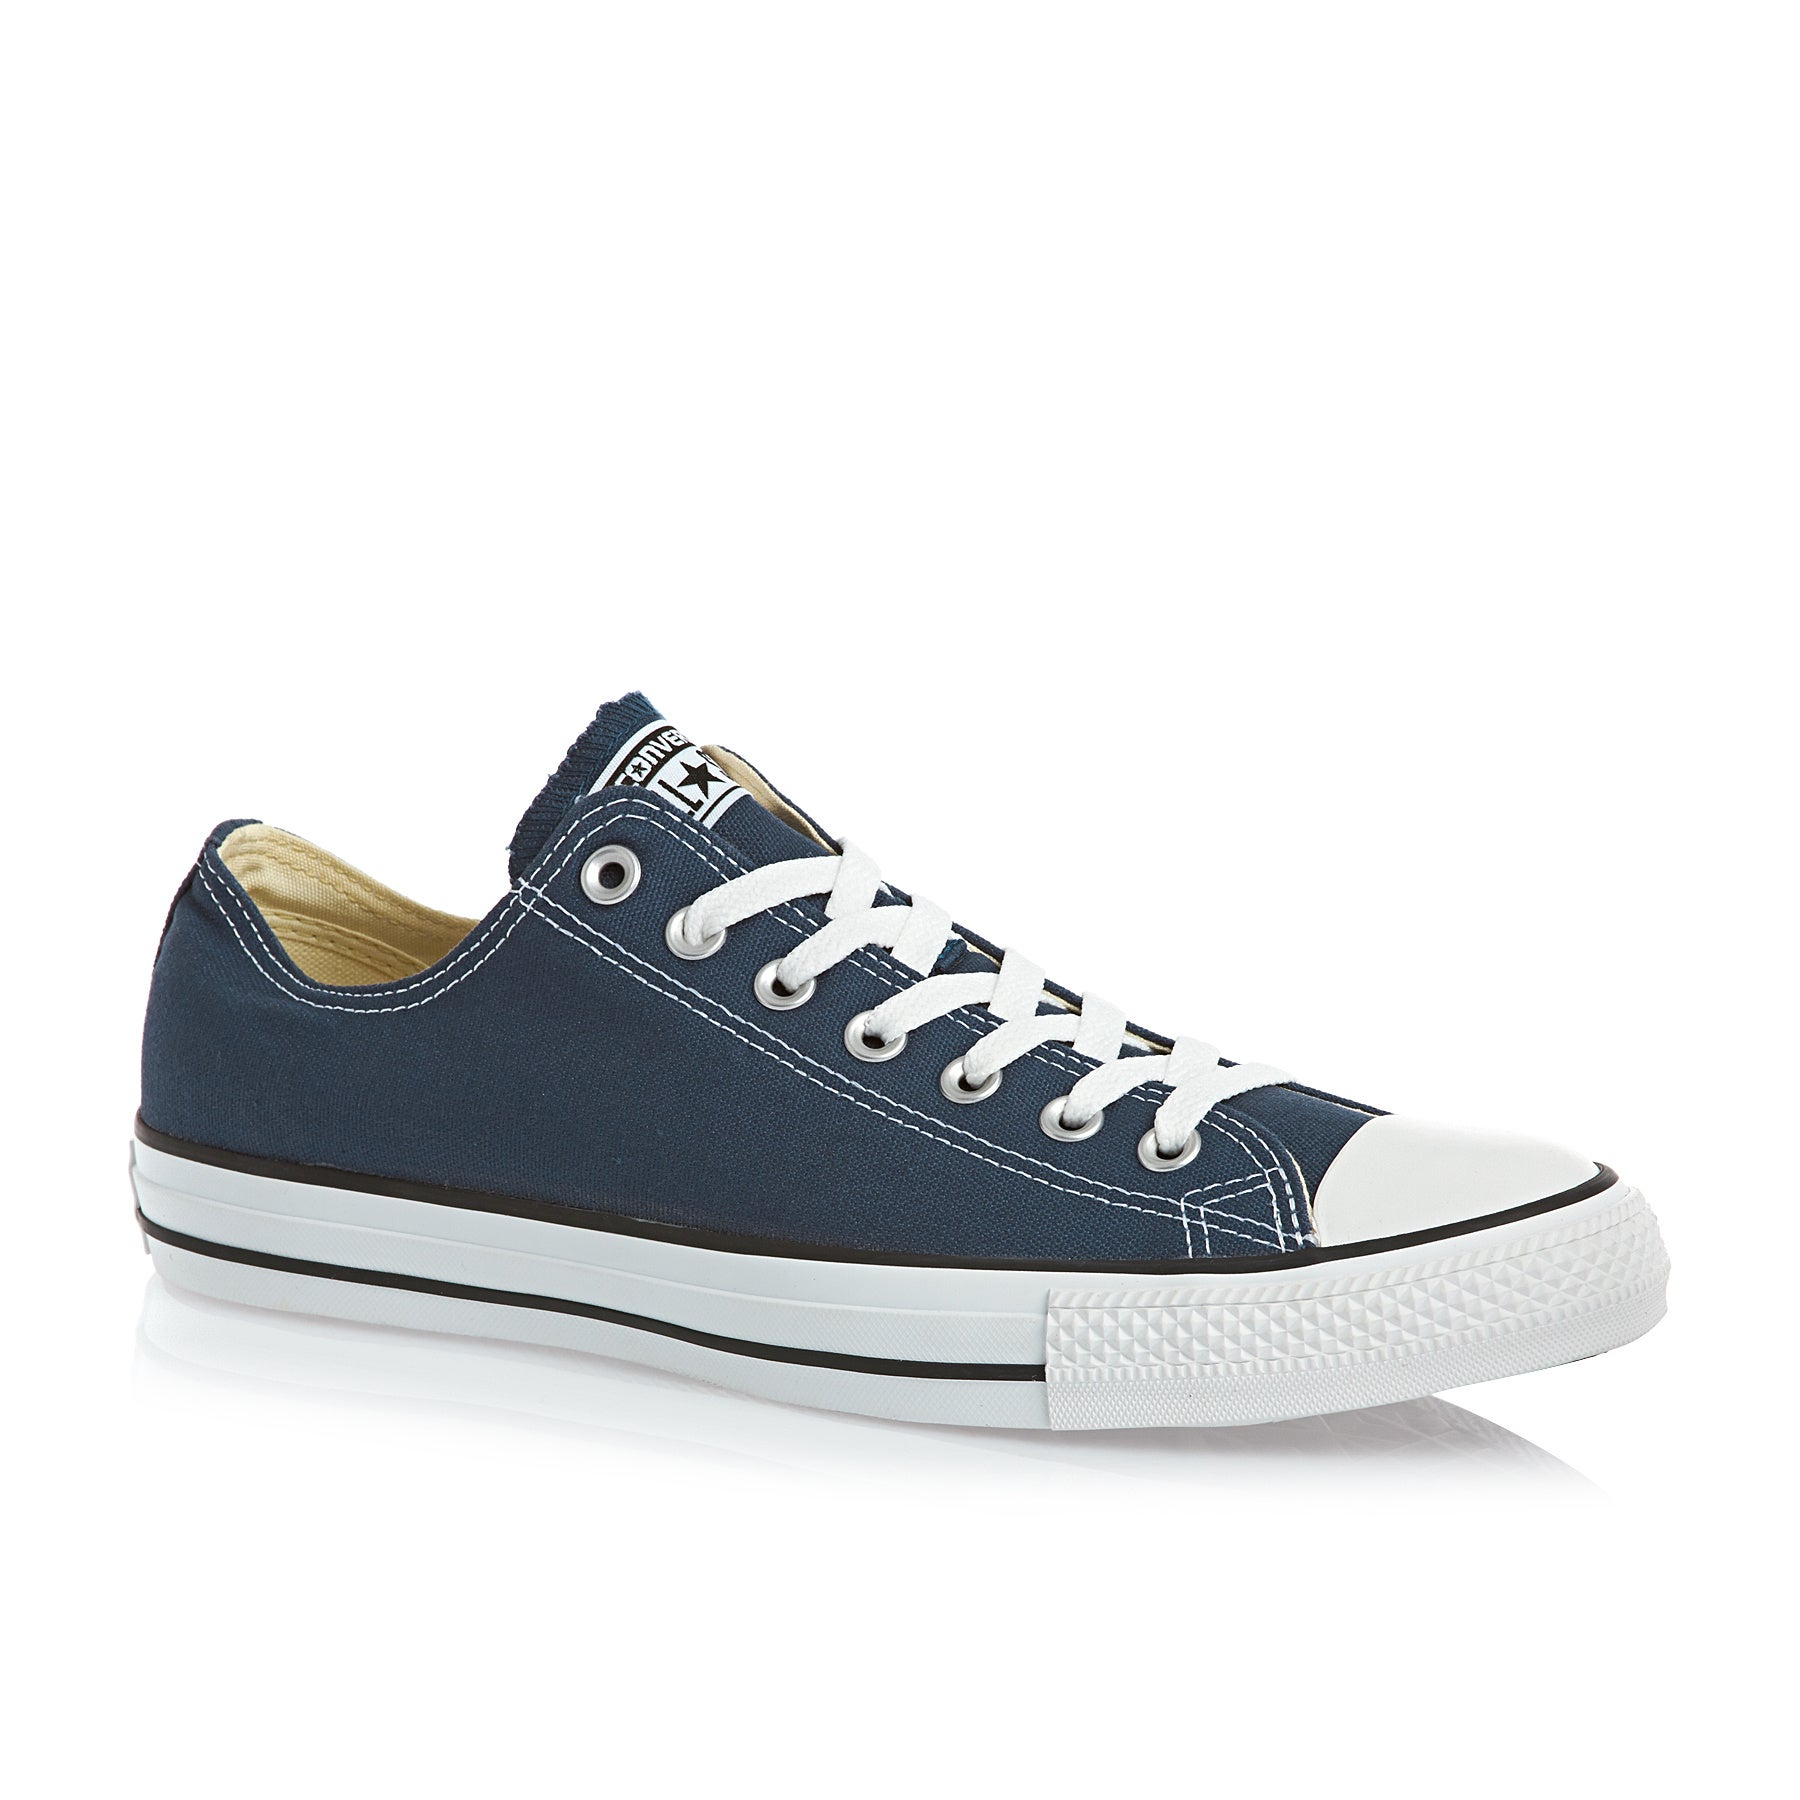 Converse Chuck Taylor All Stars OX Shoes - Navy